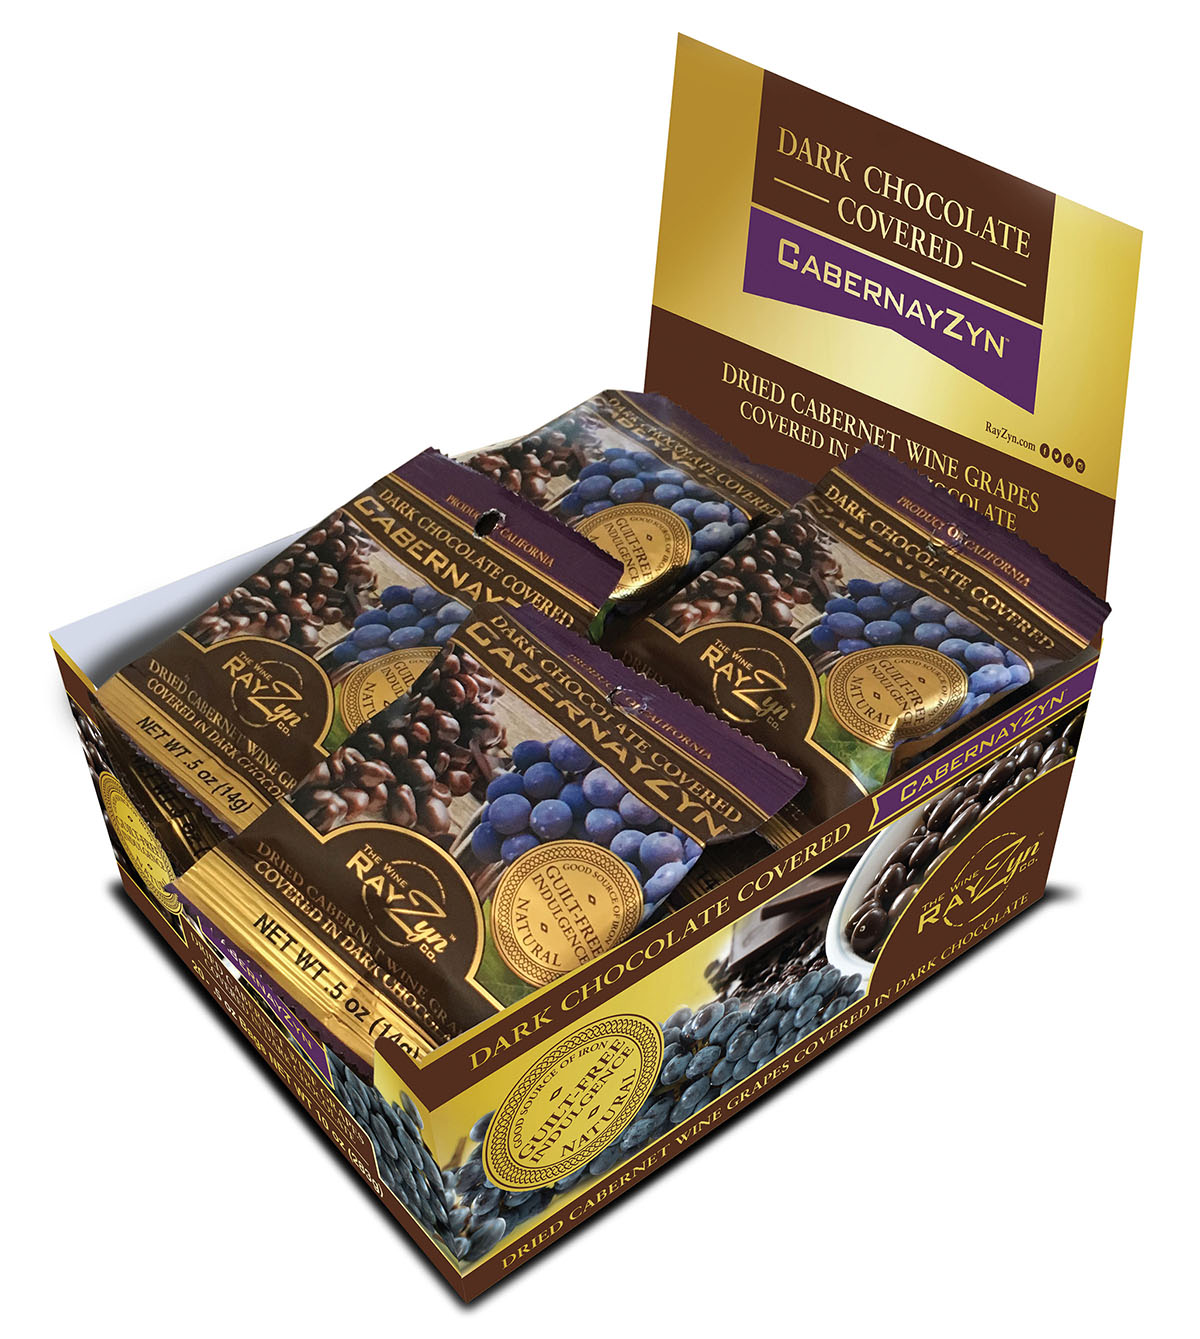 Dark ChocolateRayZyns® in.5 oz. Bags - Comes in display box of 20 units.